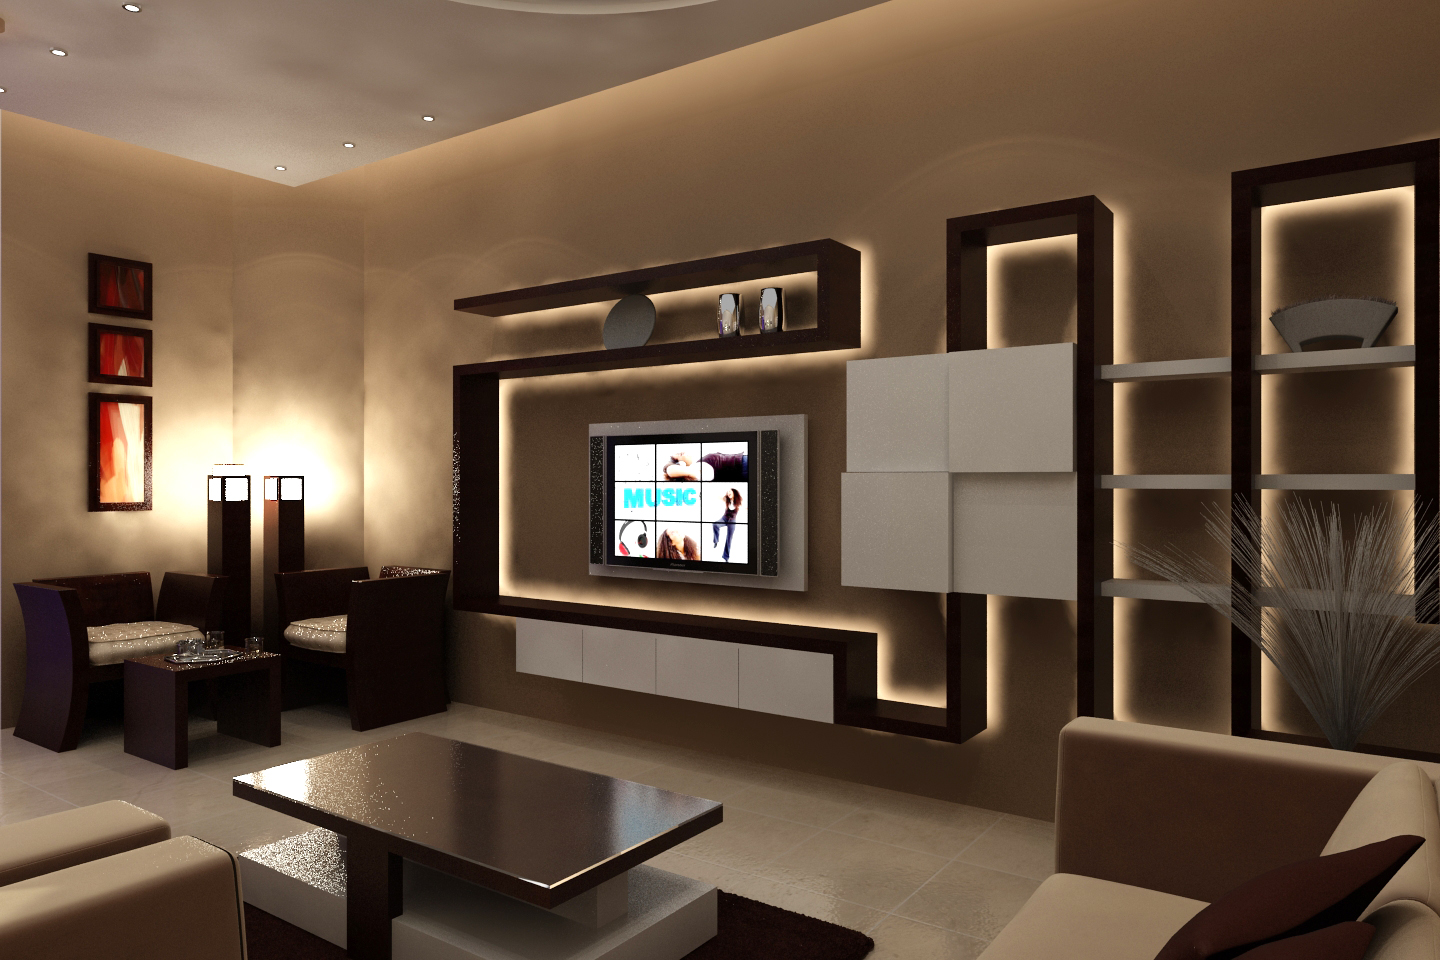 Small Tv Wall Shelf Modern Living Room Themes With Floating Tv Wall Shelf And Stylish